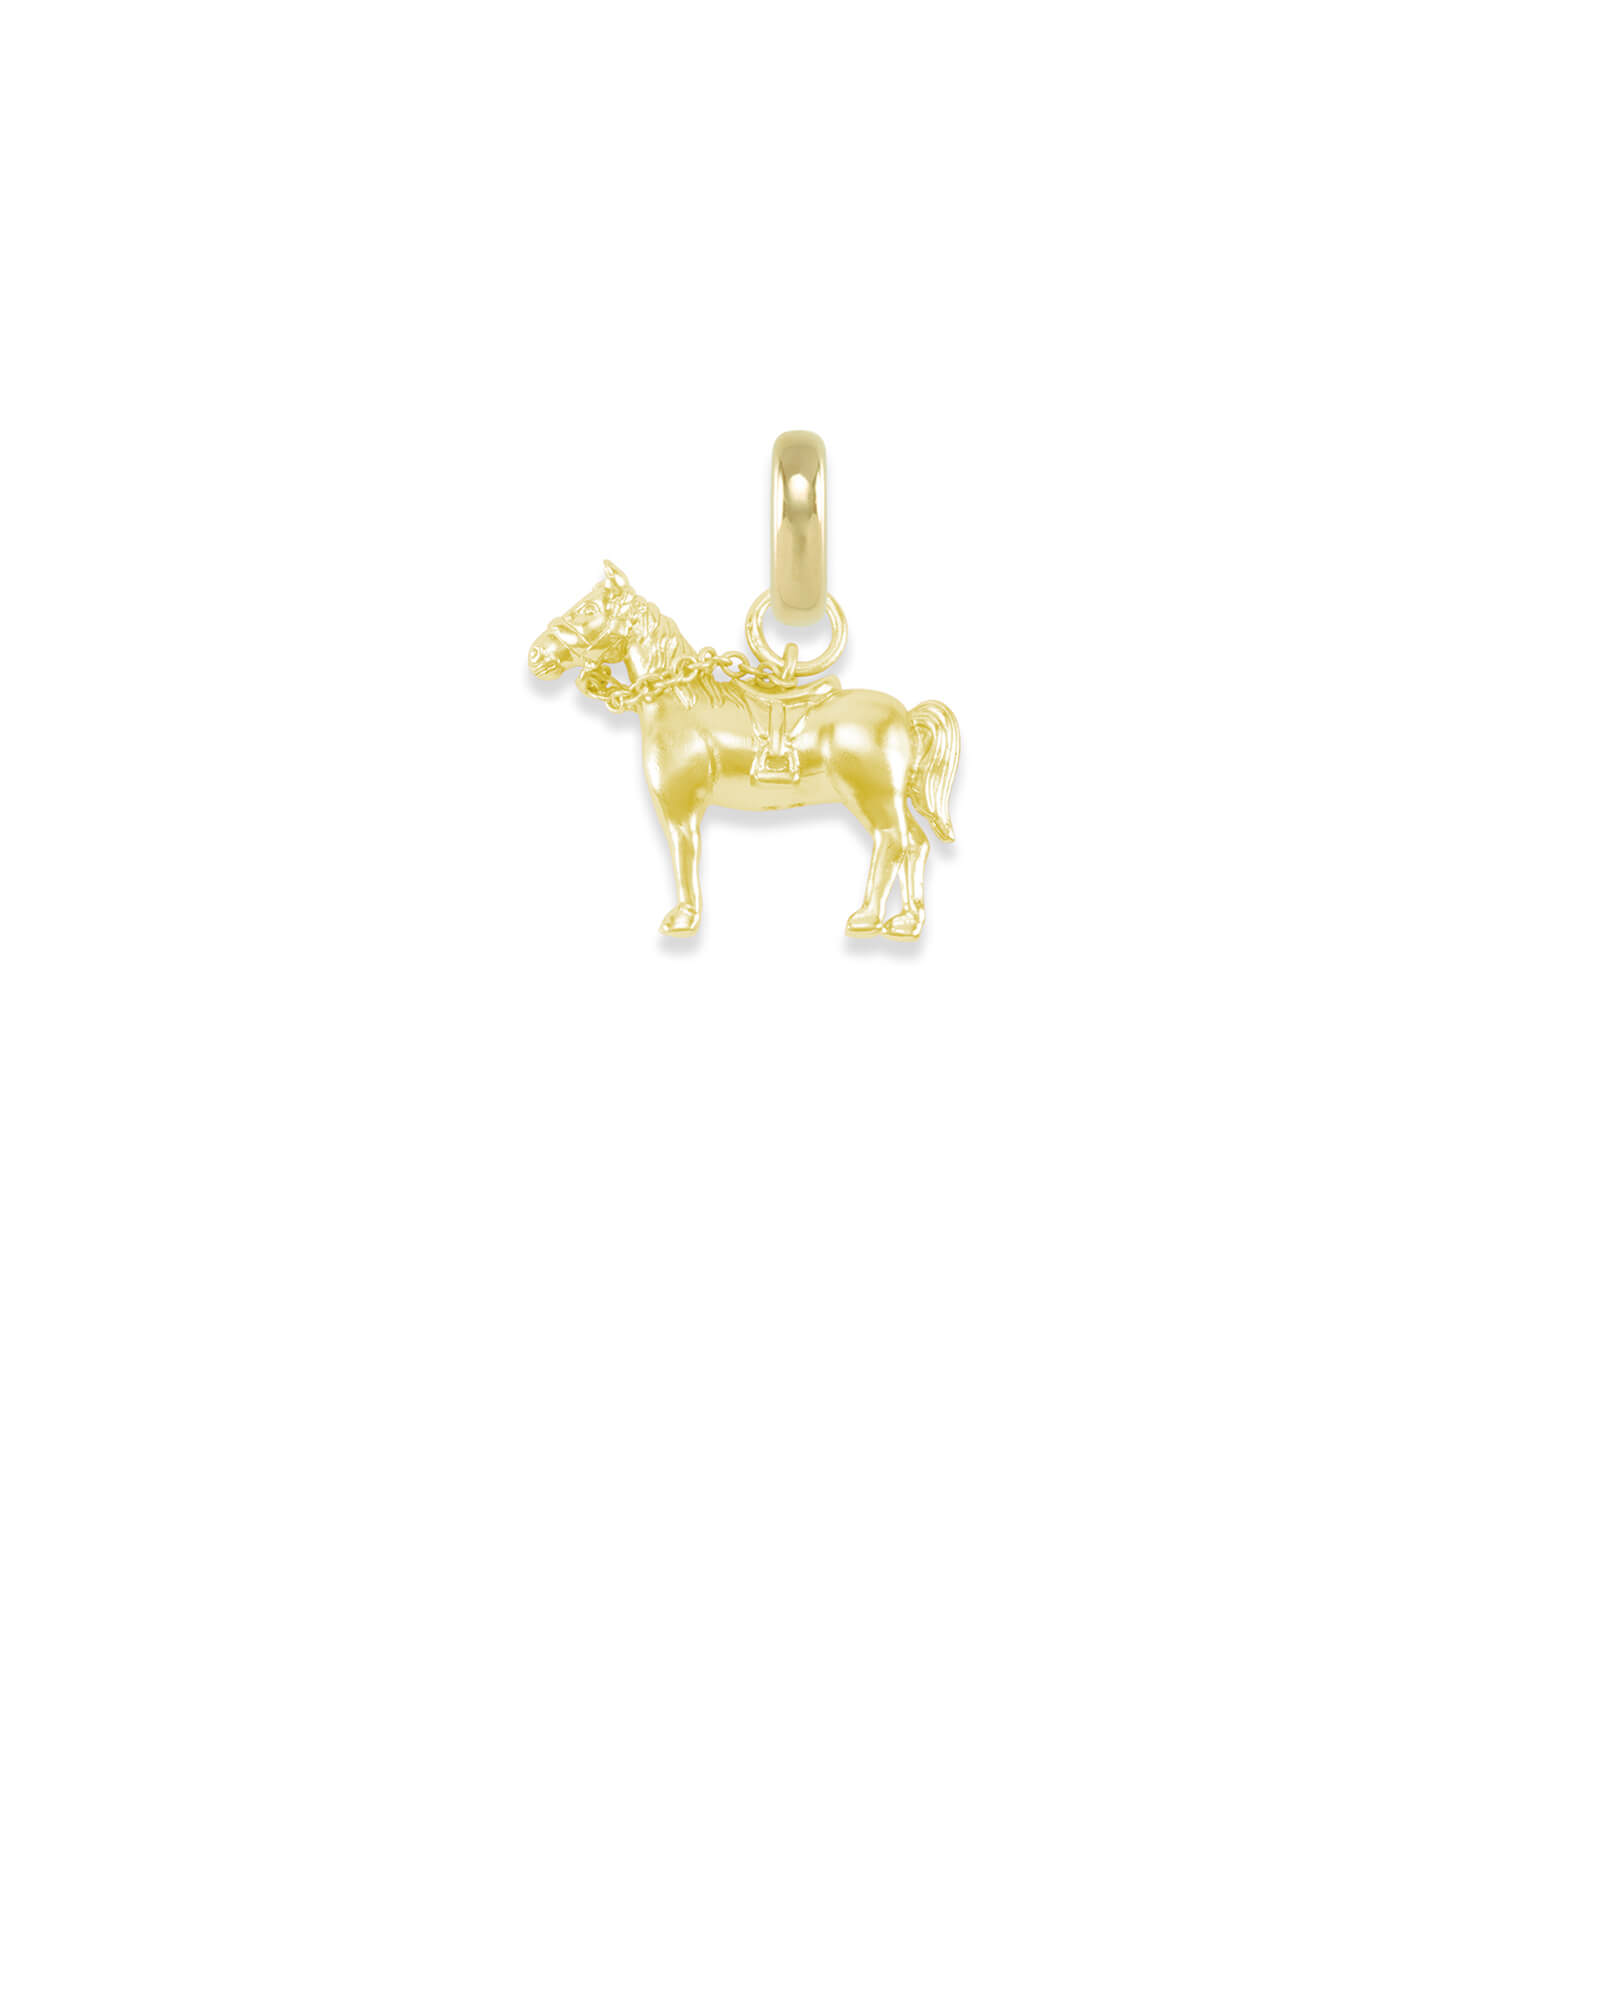 Kentucky Race Horse Charm in Gold